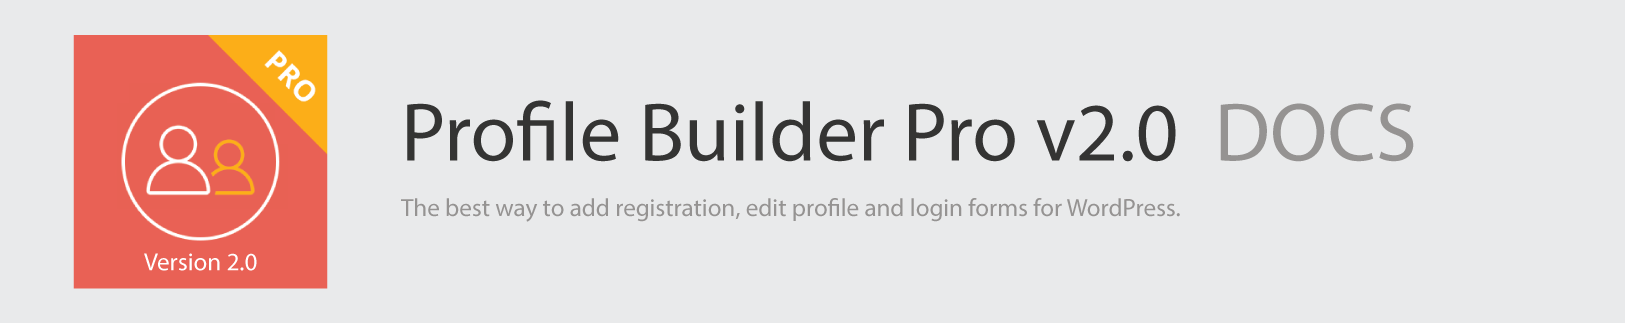 Profile Builder Docs Logo v2